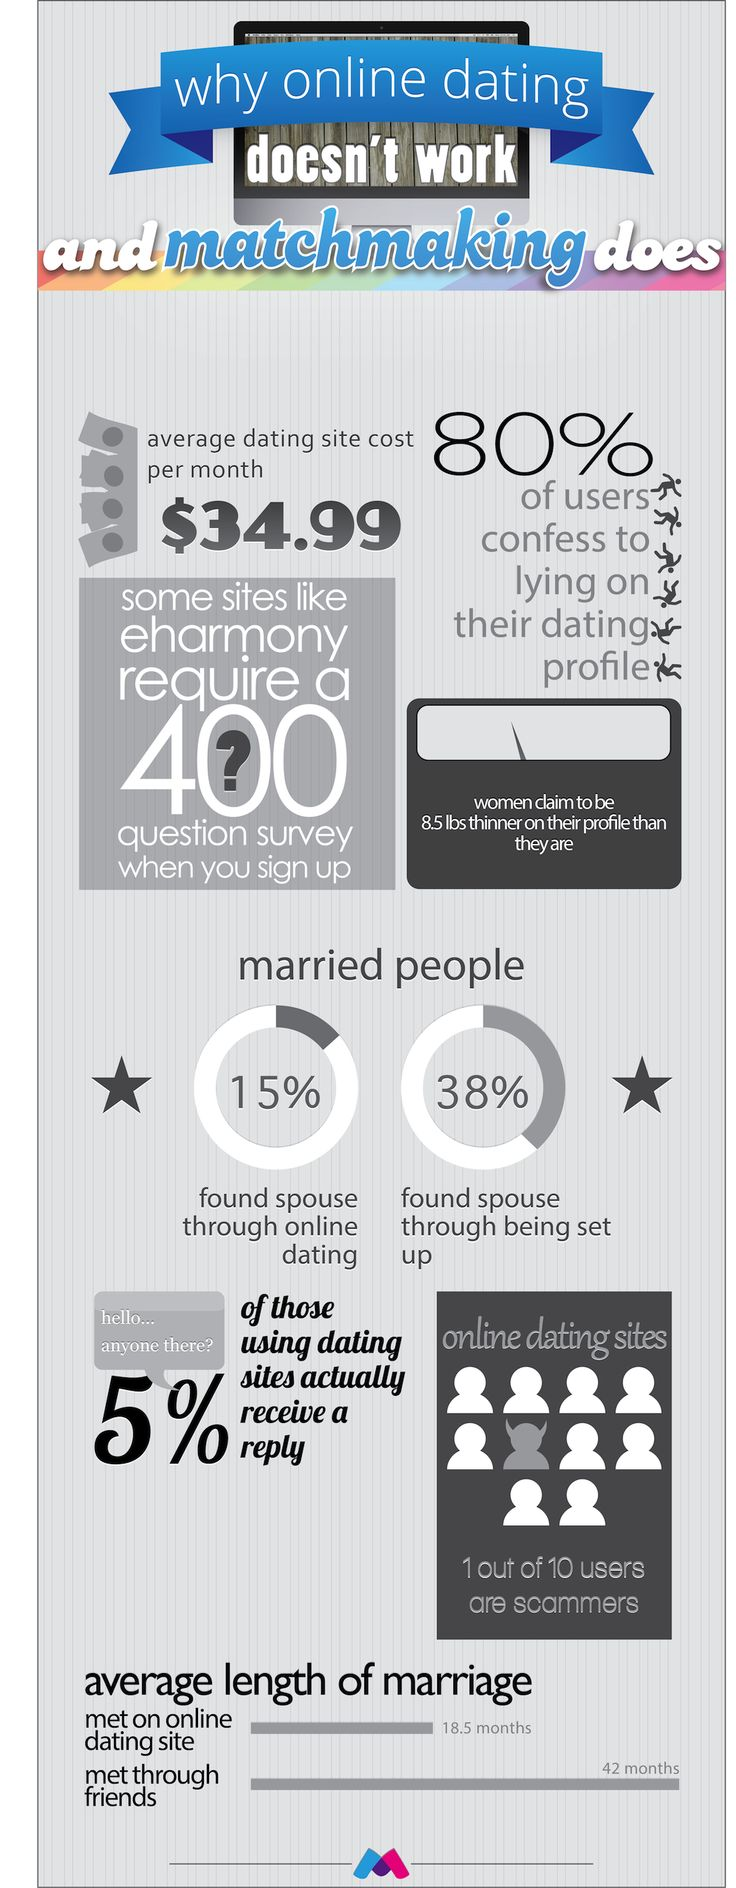 online matchmaking dating